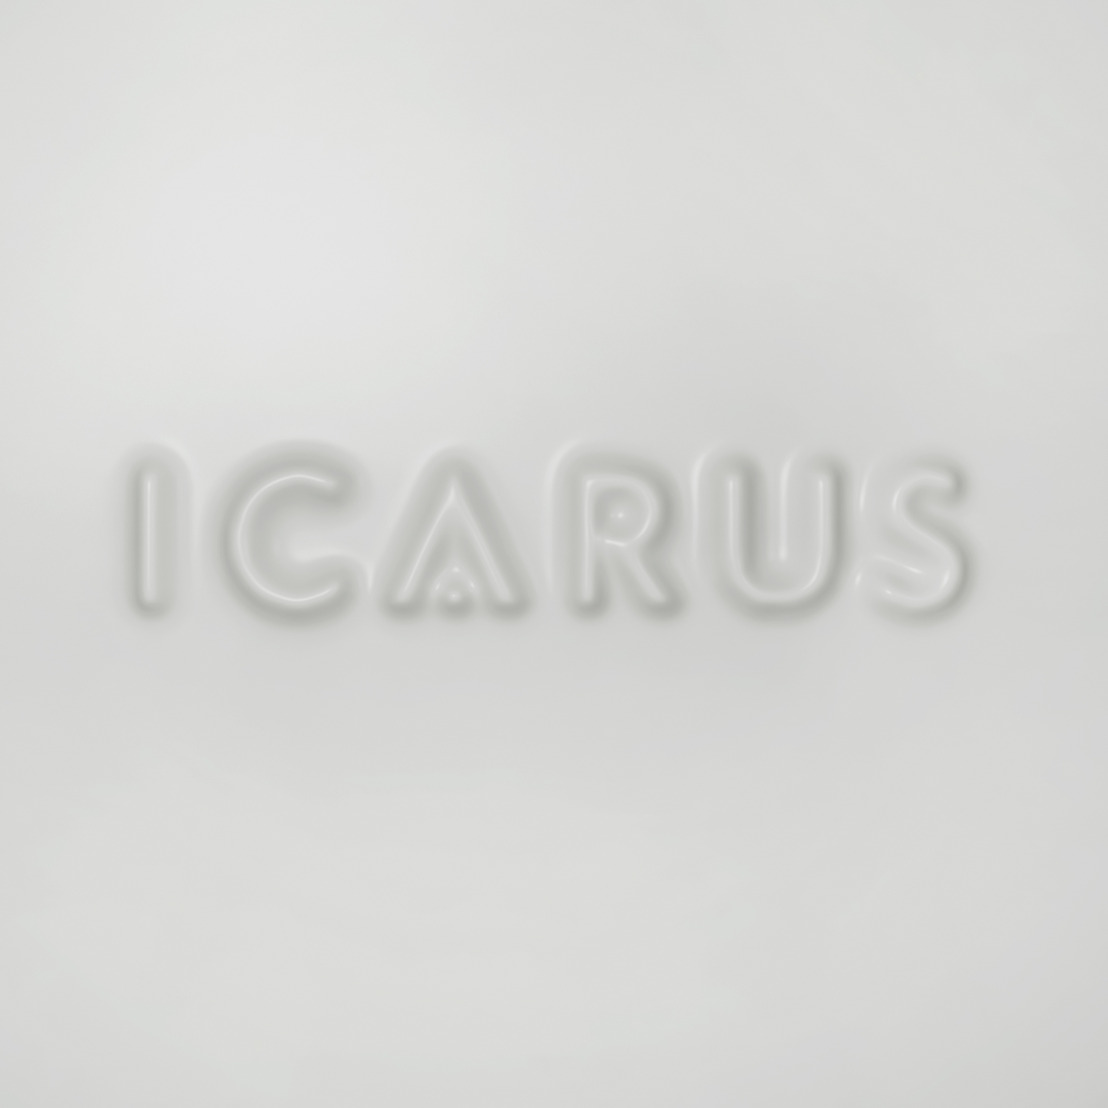 Icarus Share New EP 'In The Dark', Includes New Track 'Flowers'